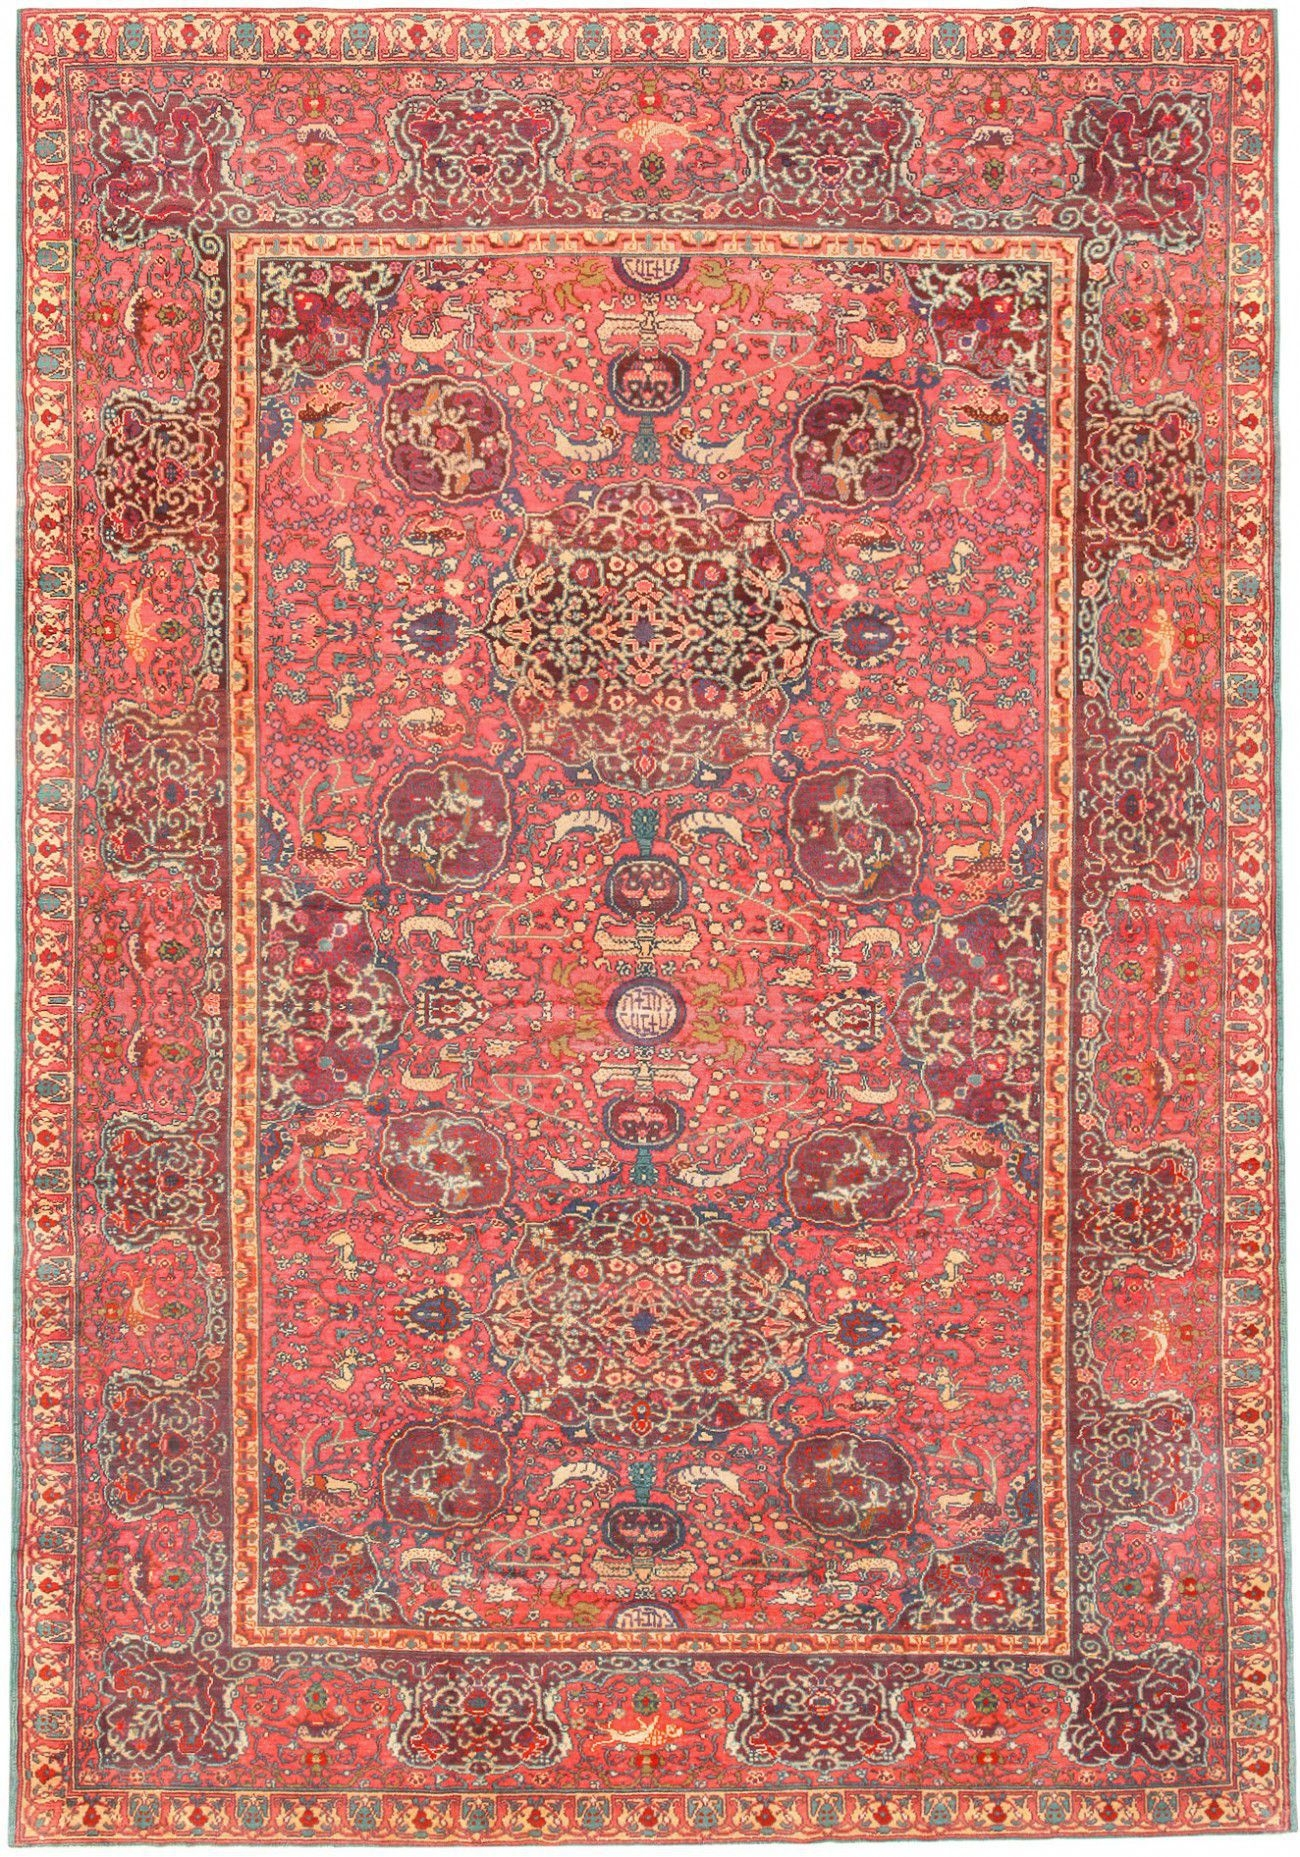 Judaica Rugs Rare Antique Jewish Israeli Carpet Collection Inside Carpet Rugs (Image 7 of 15)